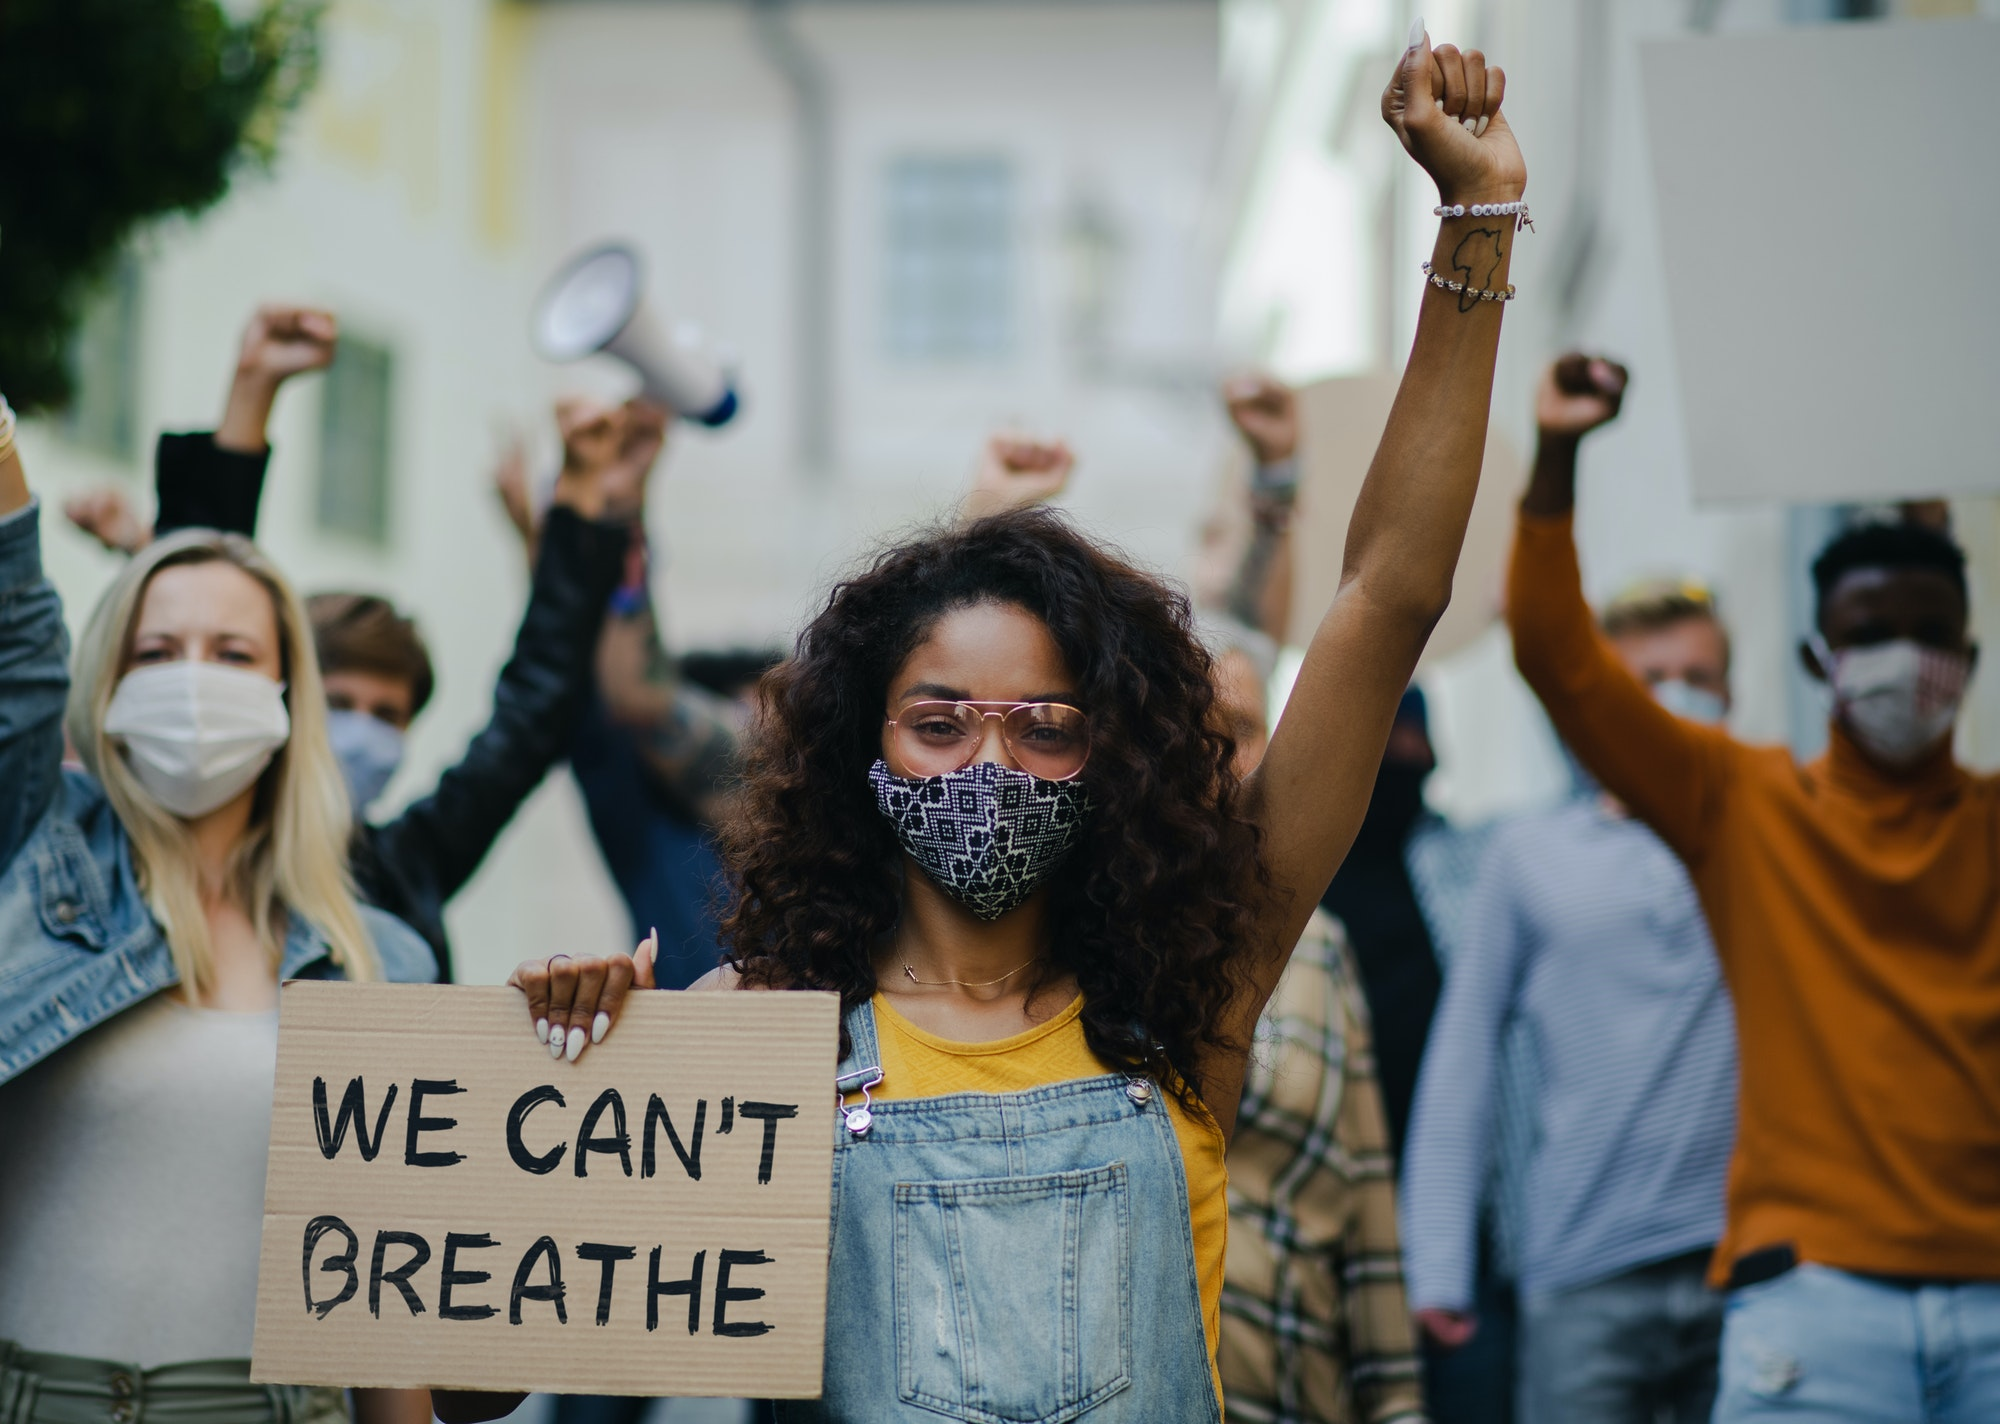 Group of people activists protesting on streets, BLM demonstration and coronavirus concept